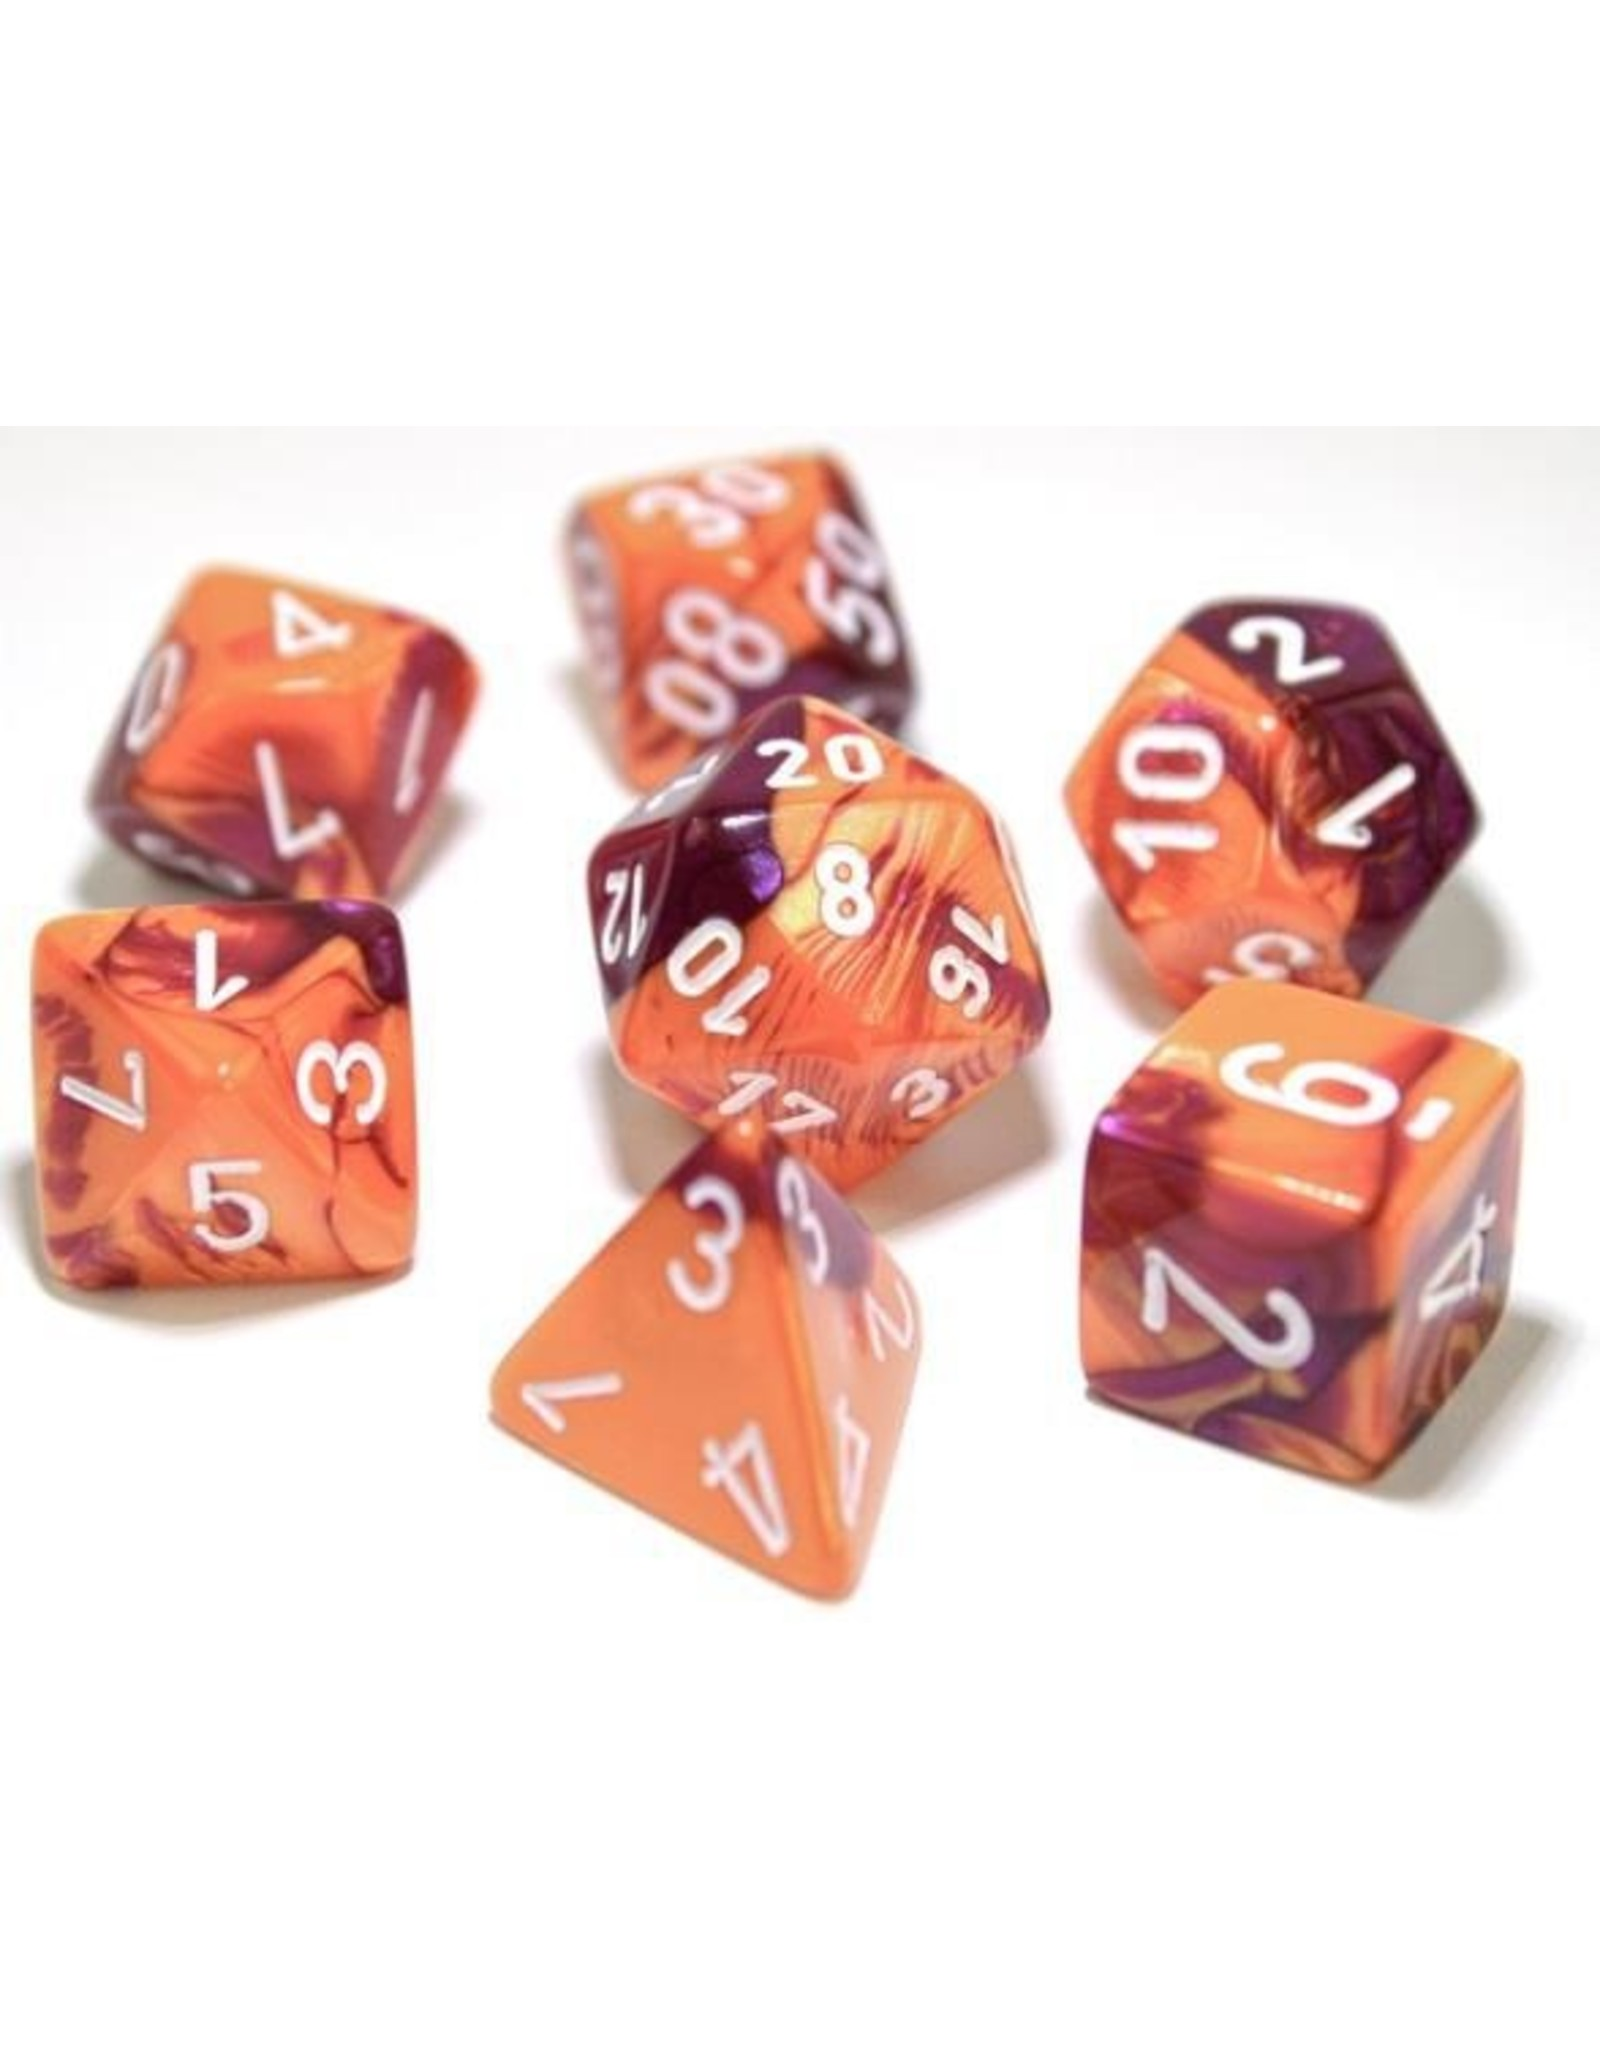 Chessex 7-Set Polyhedral Cube Lab Dice Gemini ORPUwh